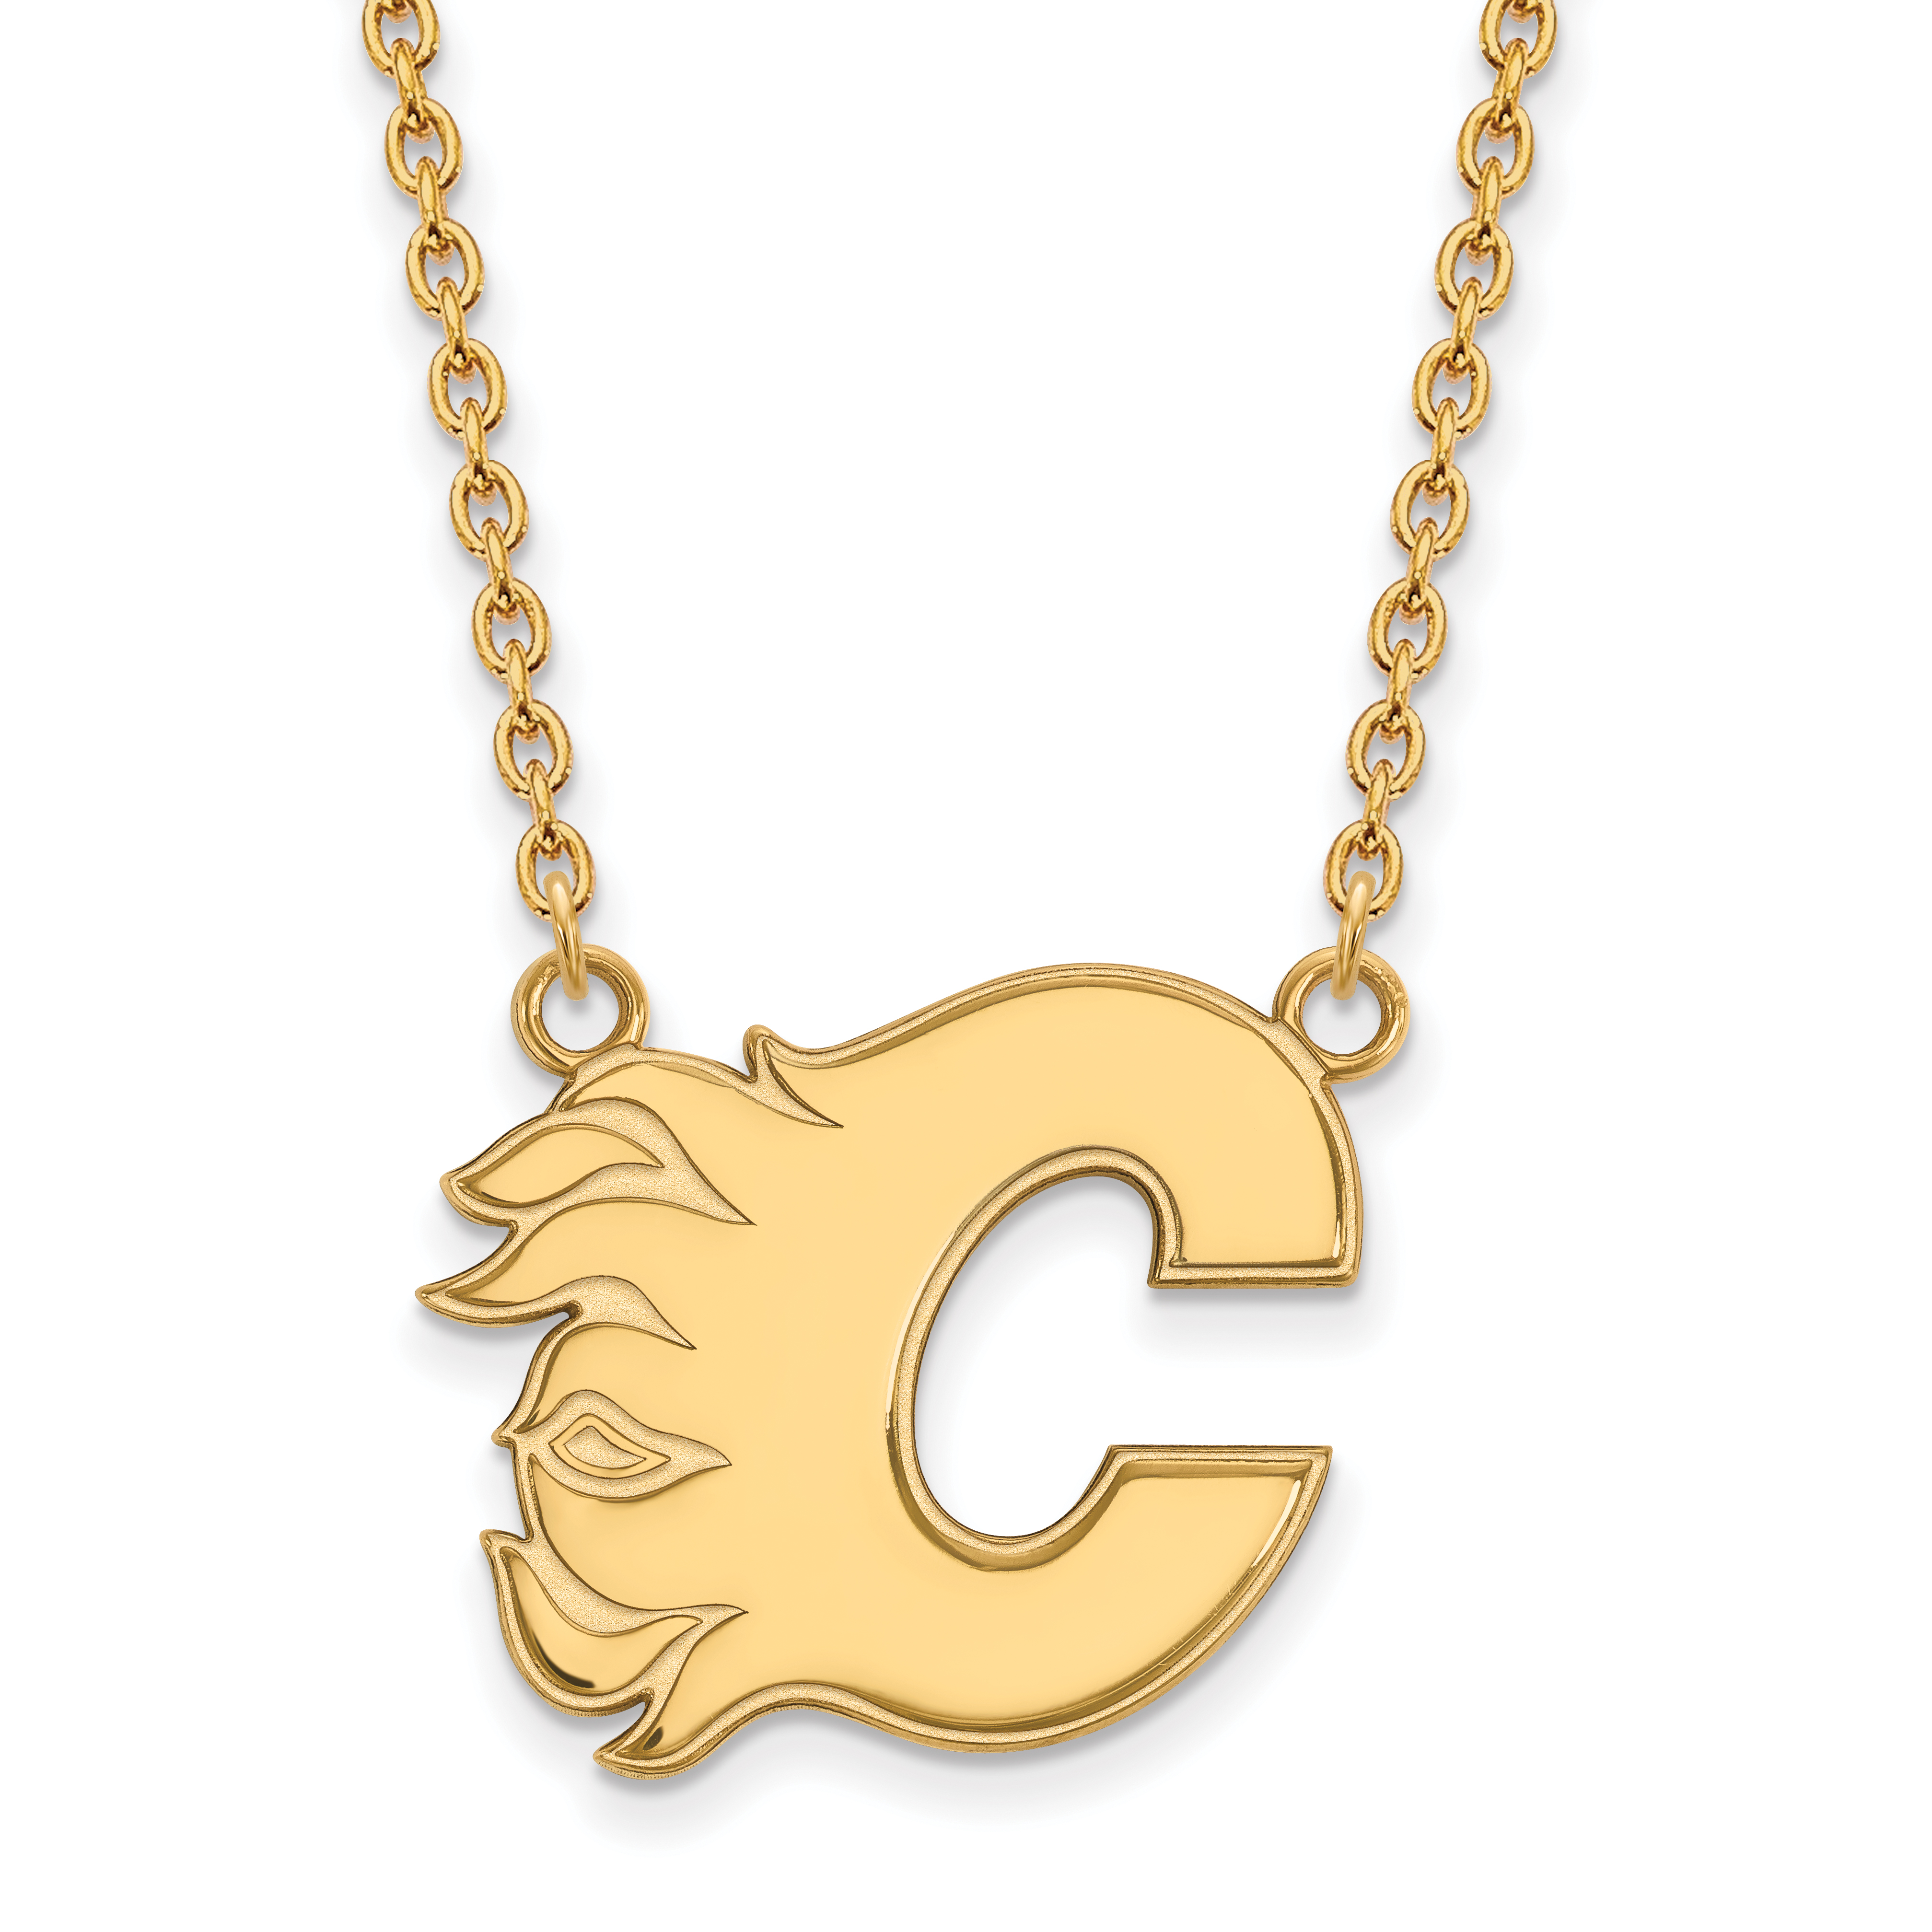 Roy Rose Jewelry Sterling Silver with 14K Yellow Gold-plated NHL LogoArt Calgary Flames Large Pendant Necklace